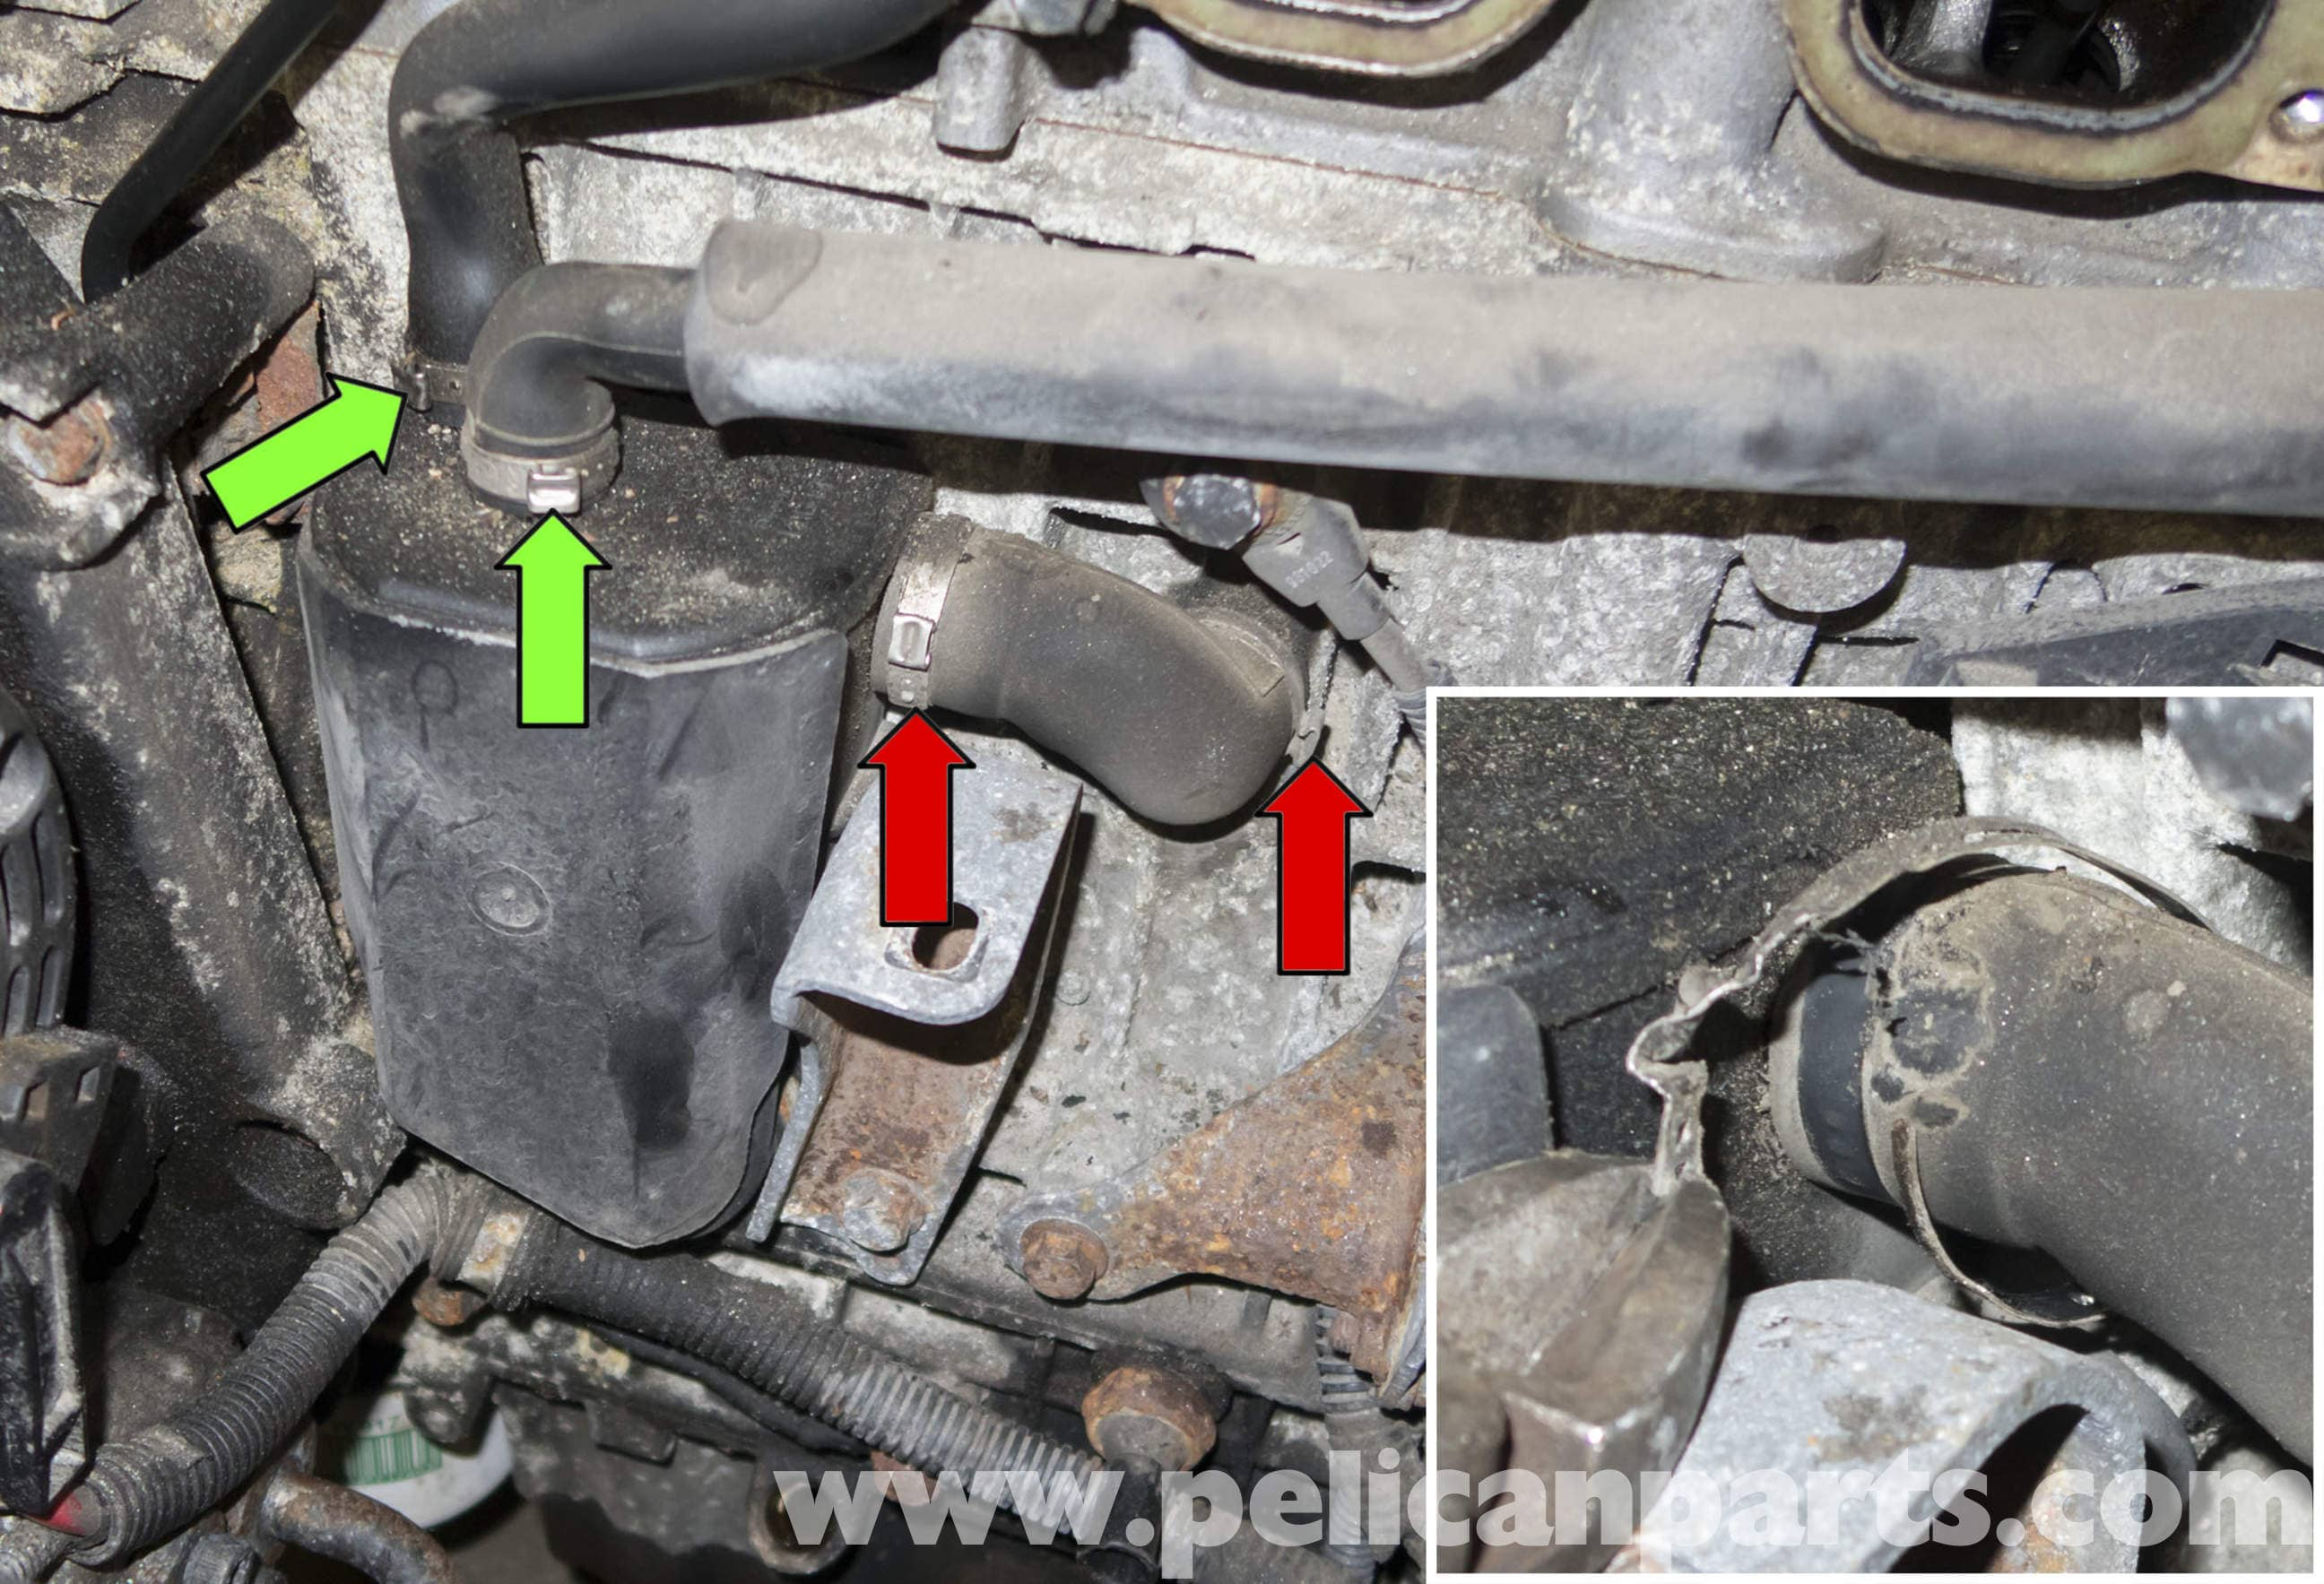 1998 volvo v70 engine diagram bypass relay wiring crankcase breather replacement (1998-2007) - pelican parts diy maintenance article